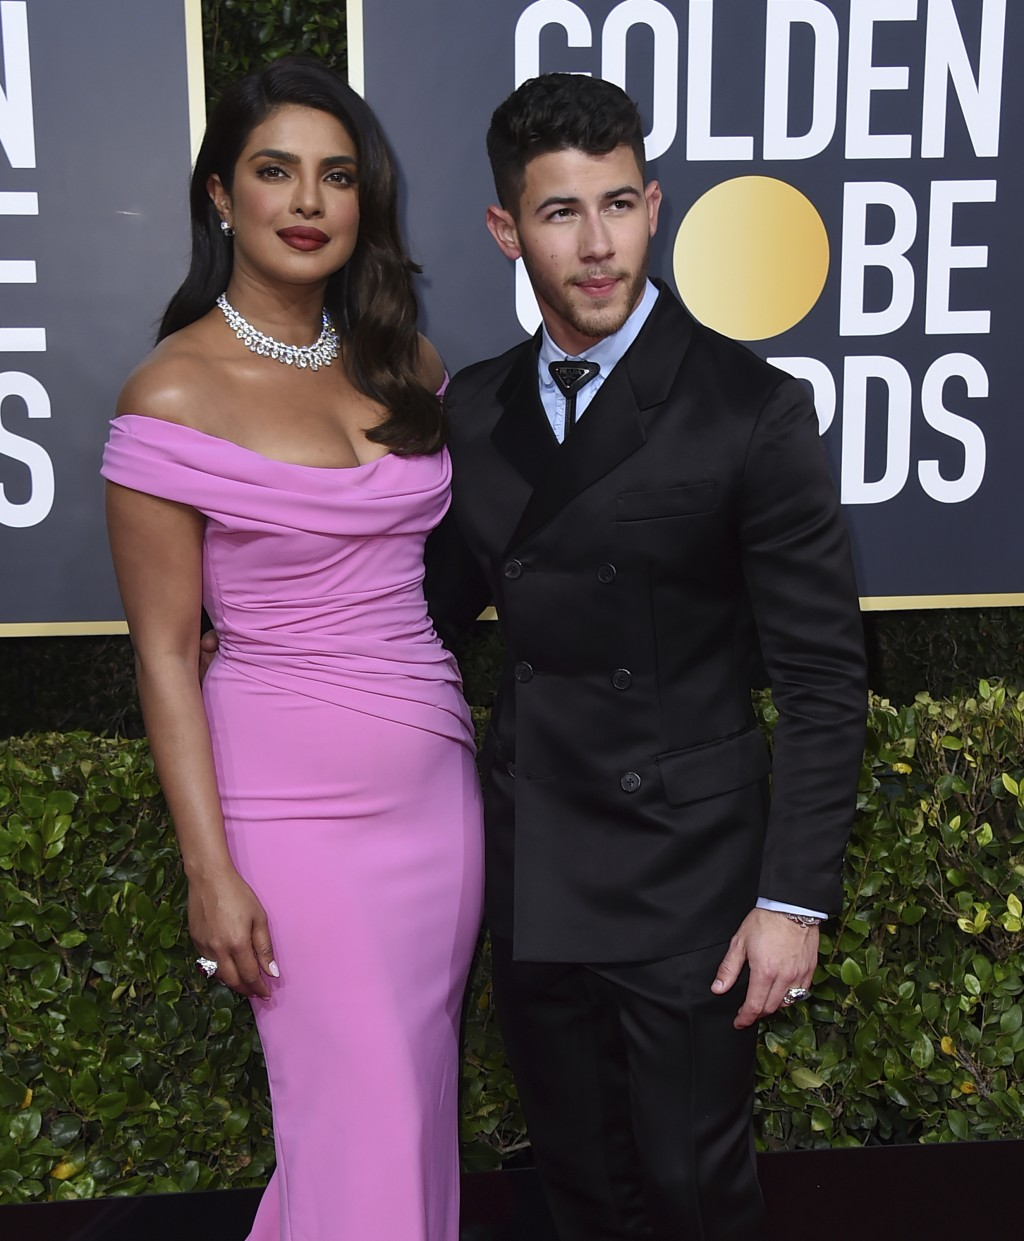 Priyanka Chopra, left, and Nick Jonas arrive at the 77th annual Golden Globe Awards at the Beverly Hilton Hotel on Sunday, Jan. 5, 2020, in Beverly Hi...